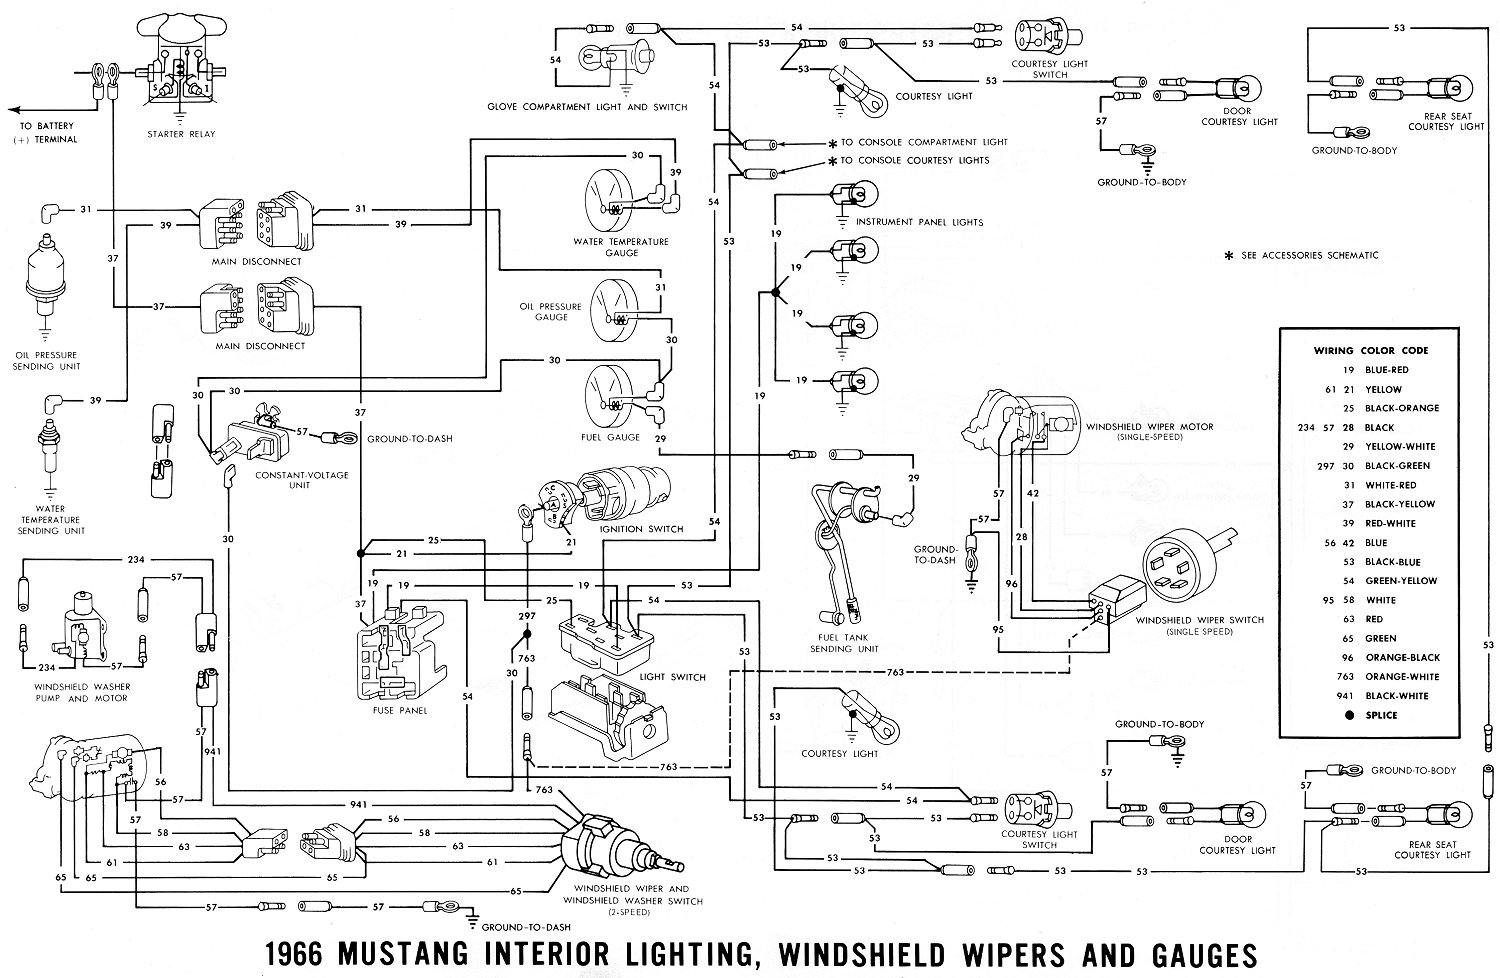 1971 Mustang Ignition Wiring Diagram Will Be A Thing 1970 Ford Switch 1965 Color Simple Rh David Huggett Co Uk 67